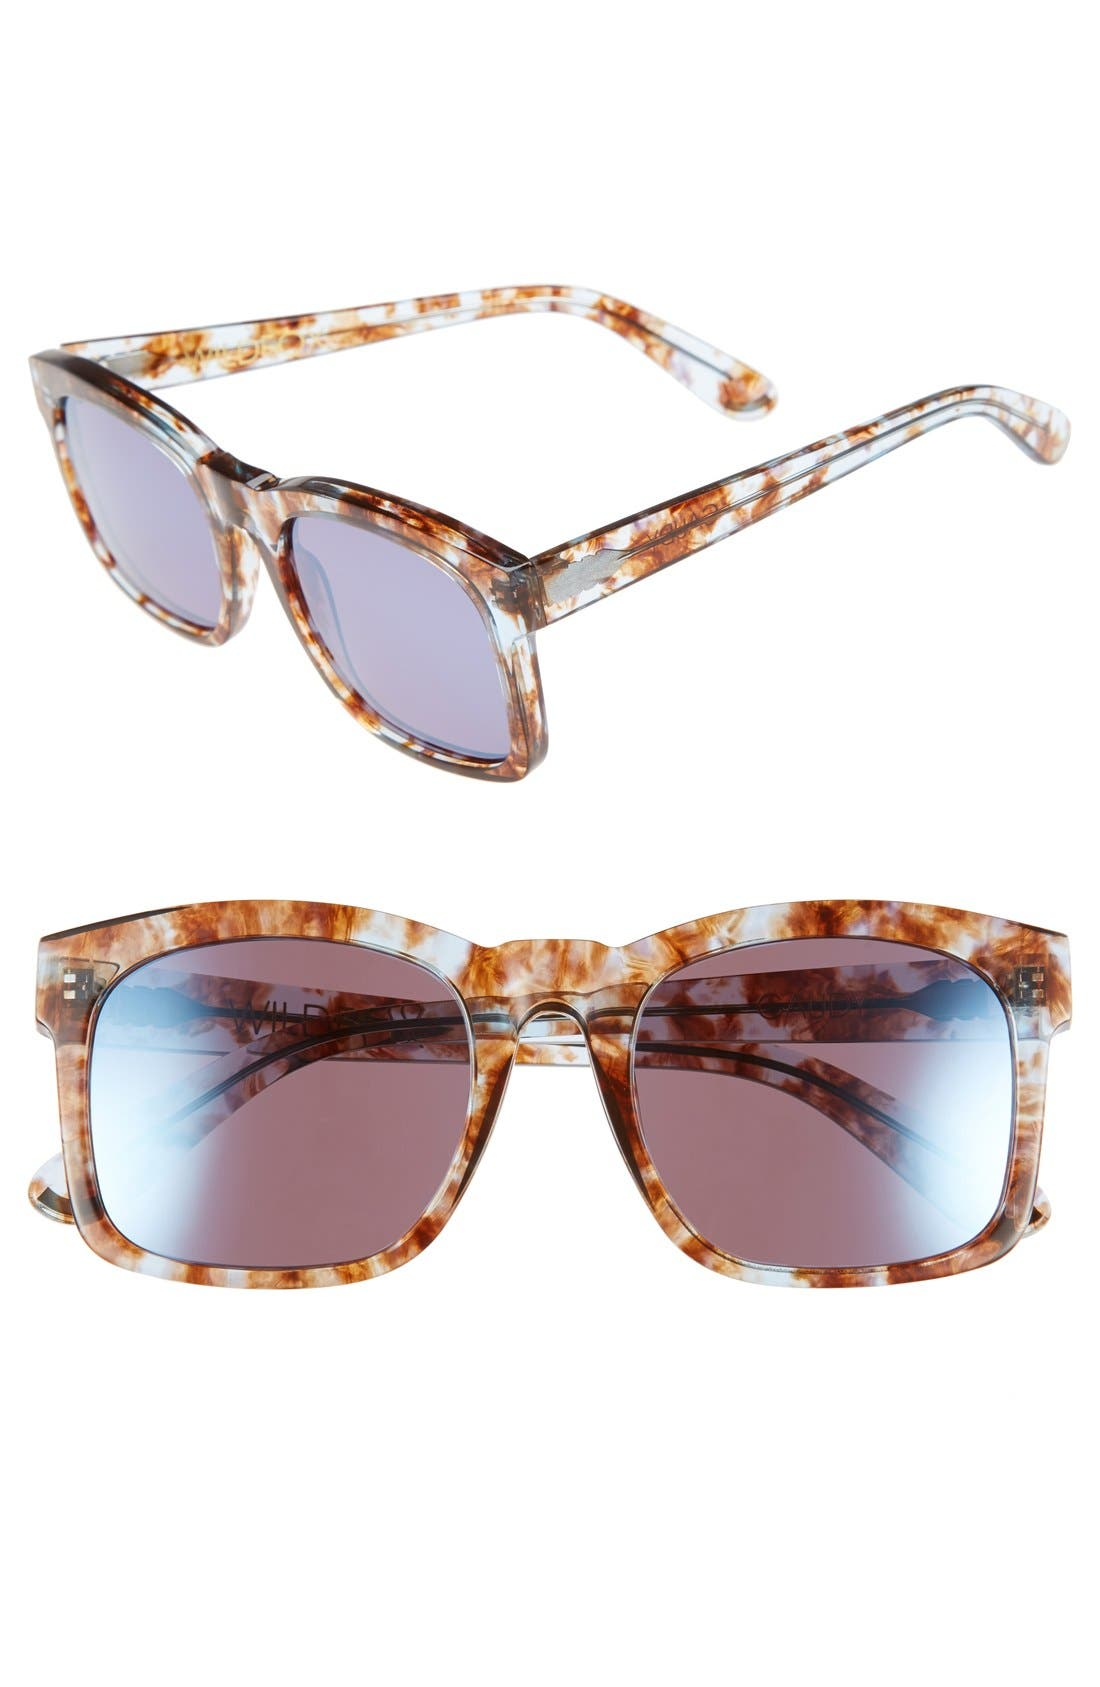 'Gaudy Deluxe' 55mm Sunglasses,                             Main thumbnail 1, color,                             200